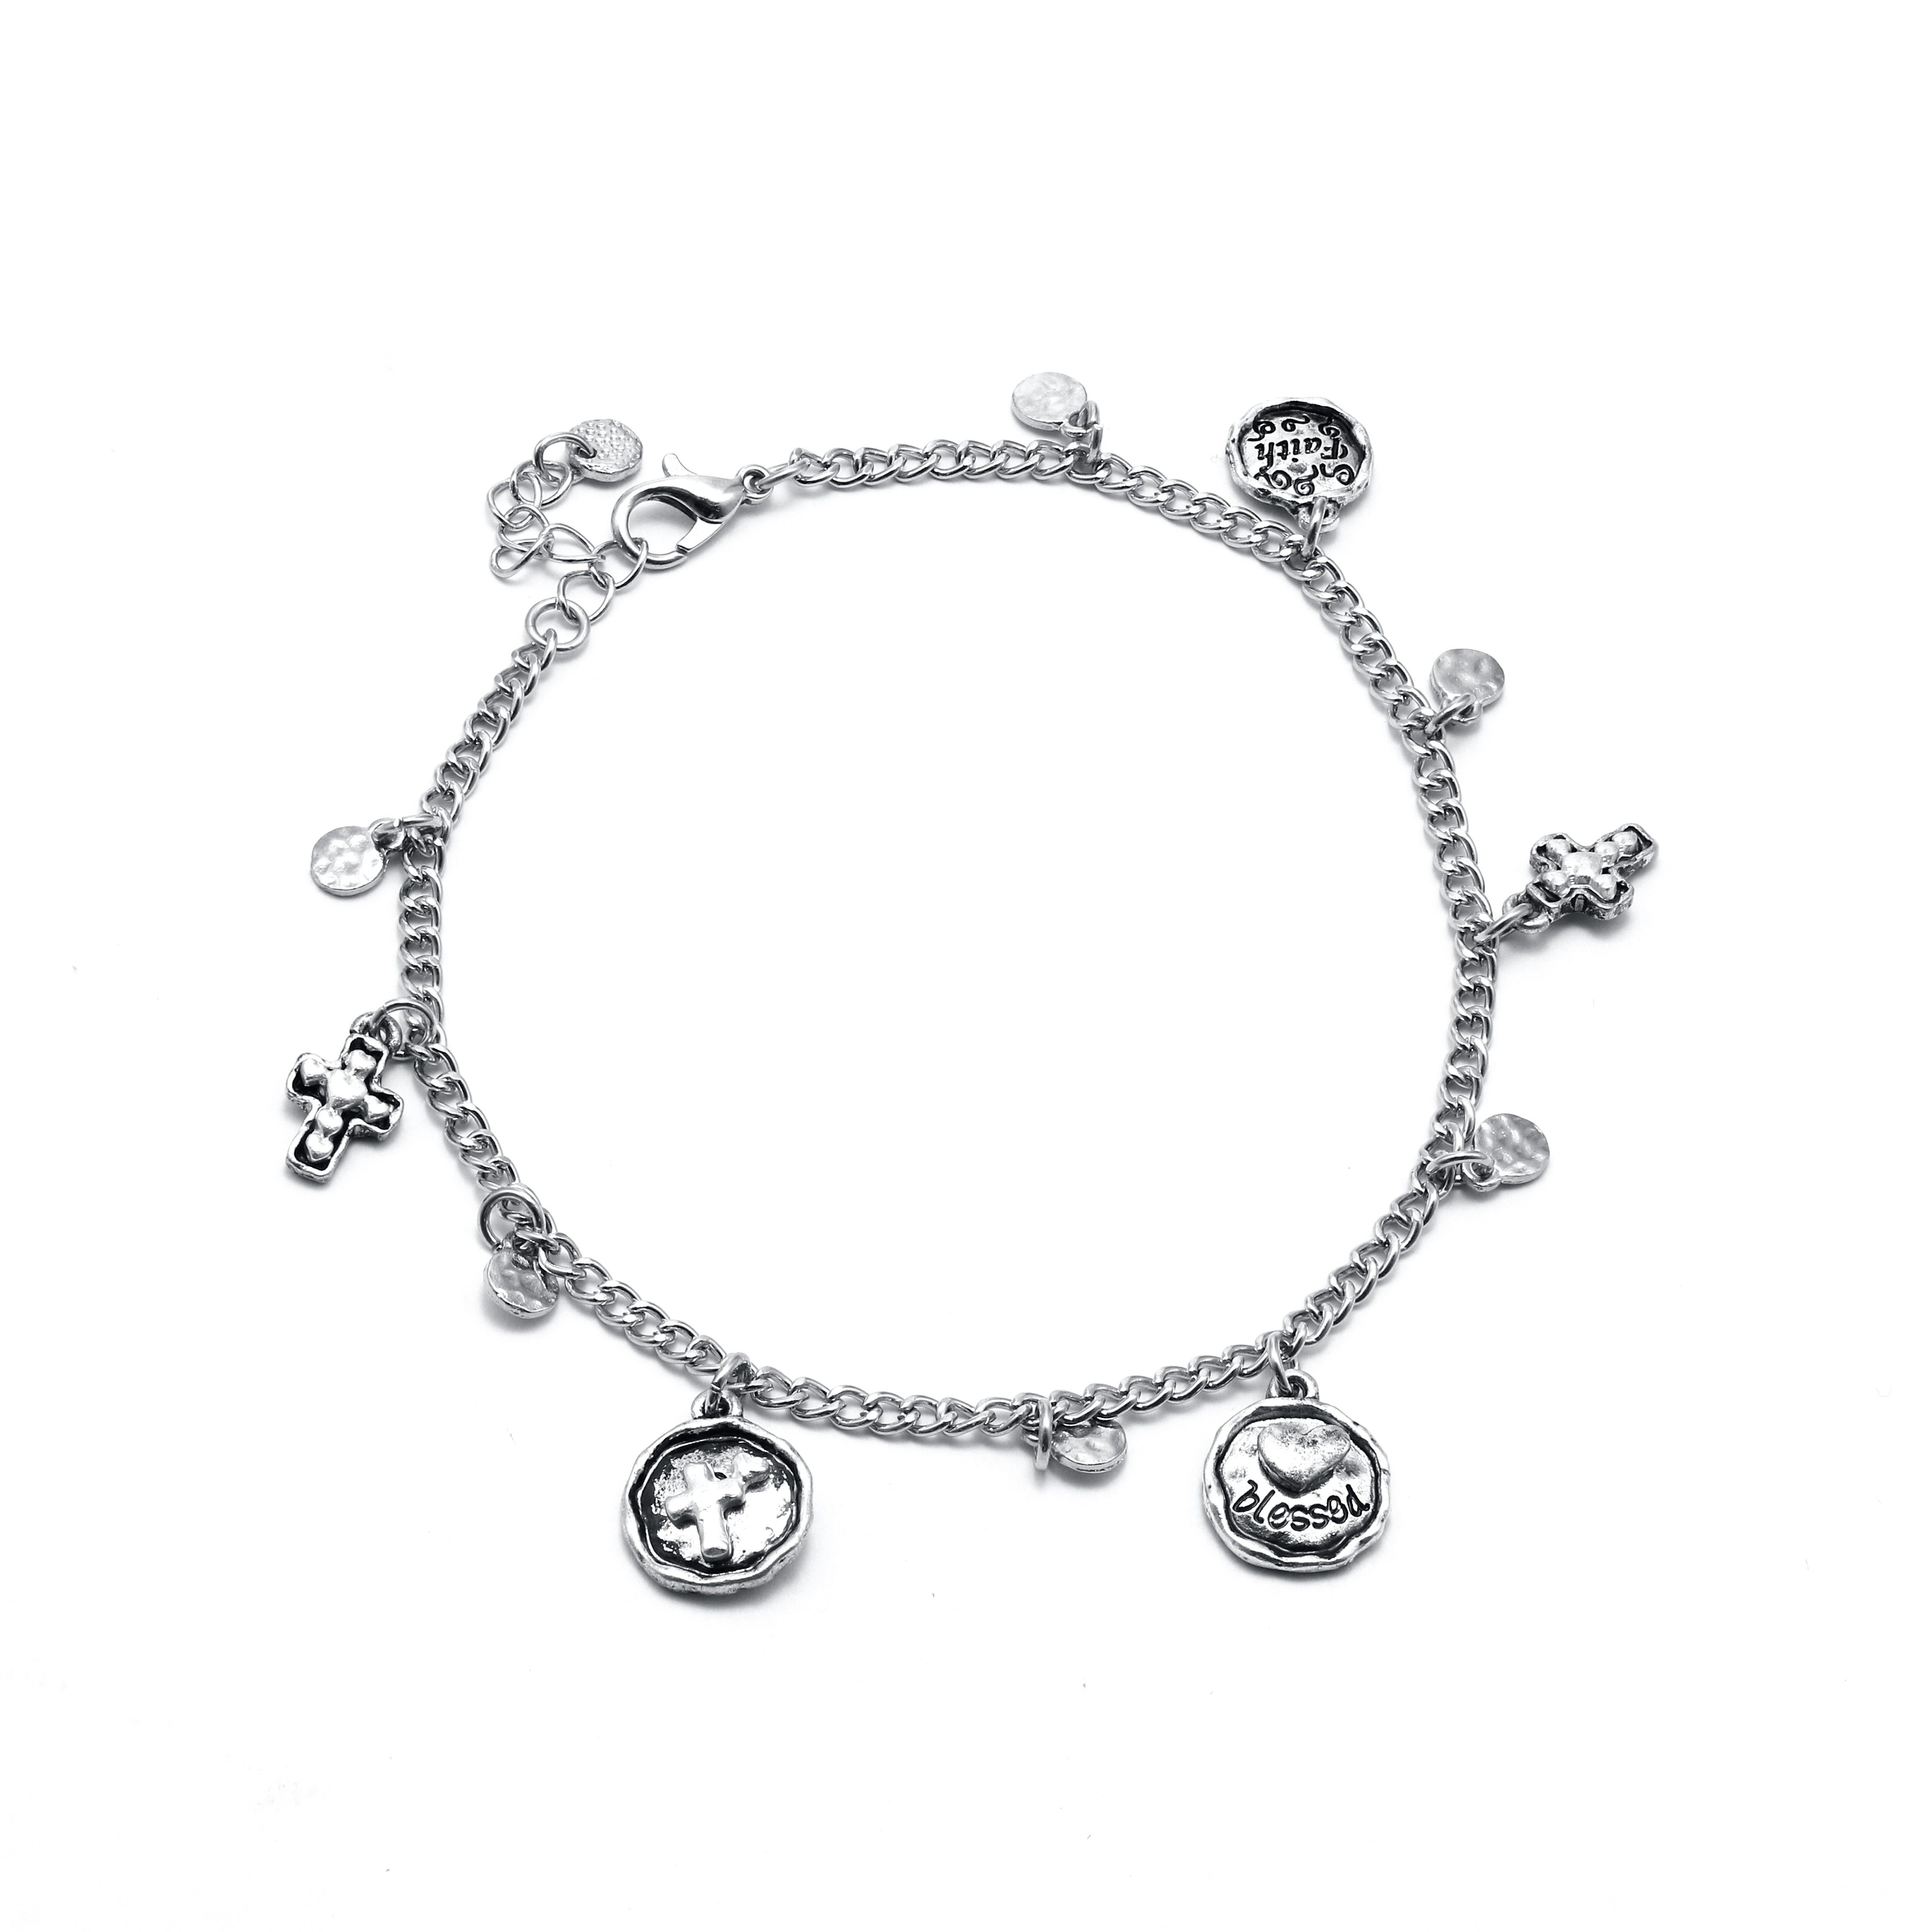 g anklets ladies latest payal girls variation products plated designer silver womens for anklet